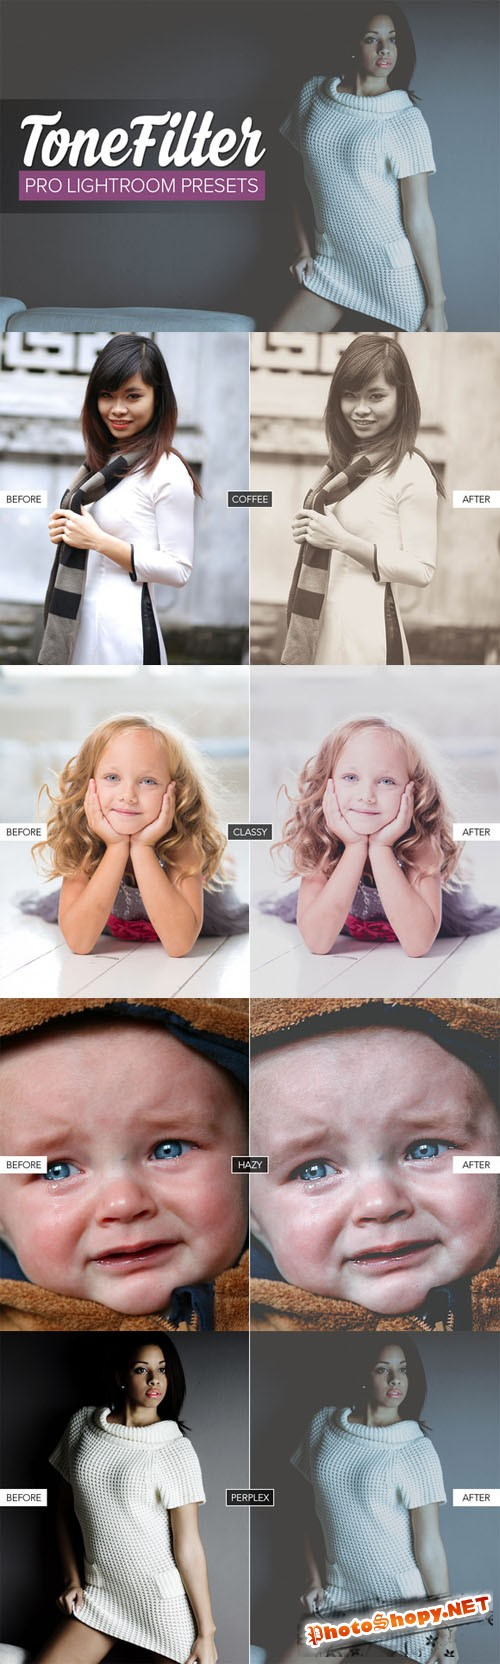 Creativemarket Matte Lightroom Presets 145384